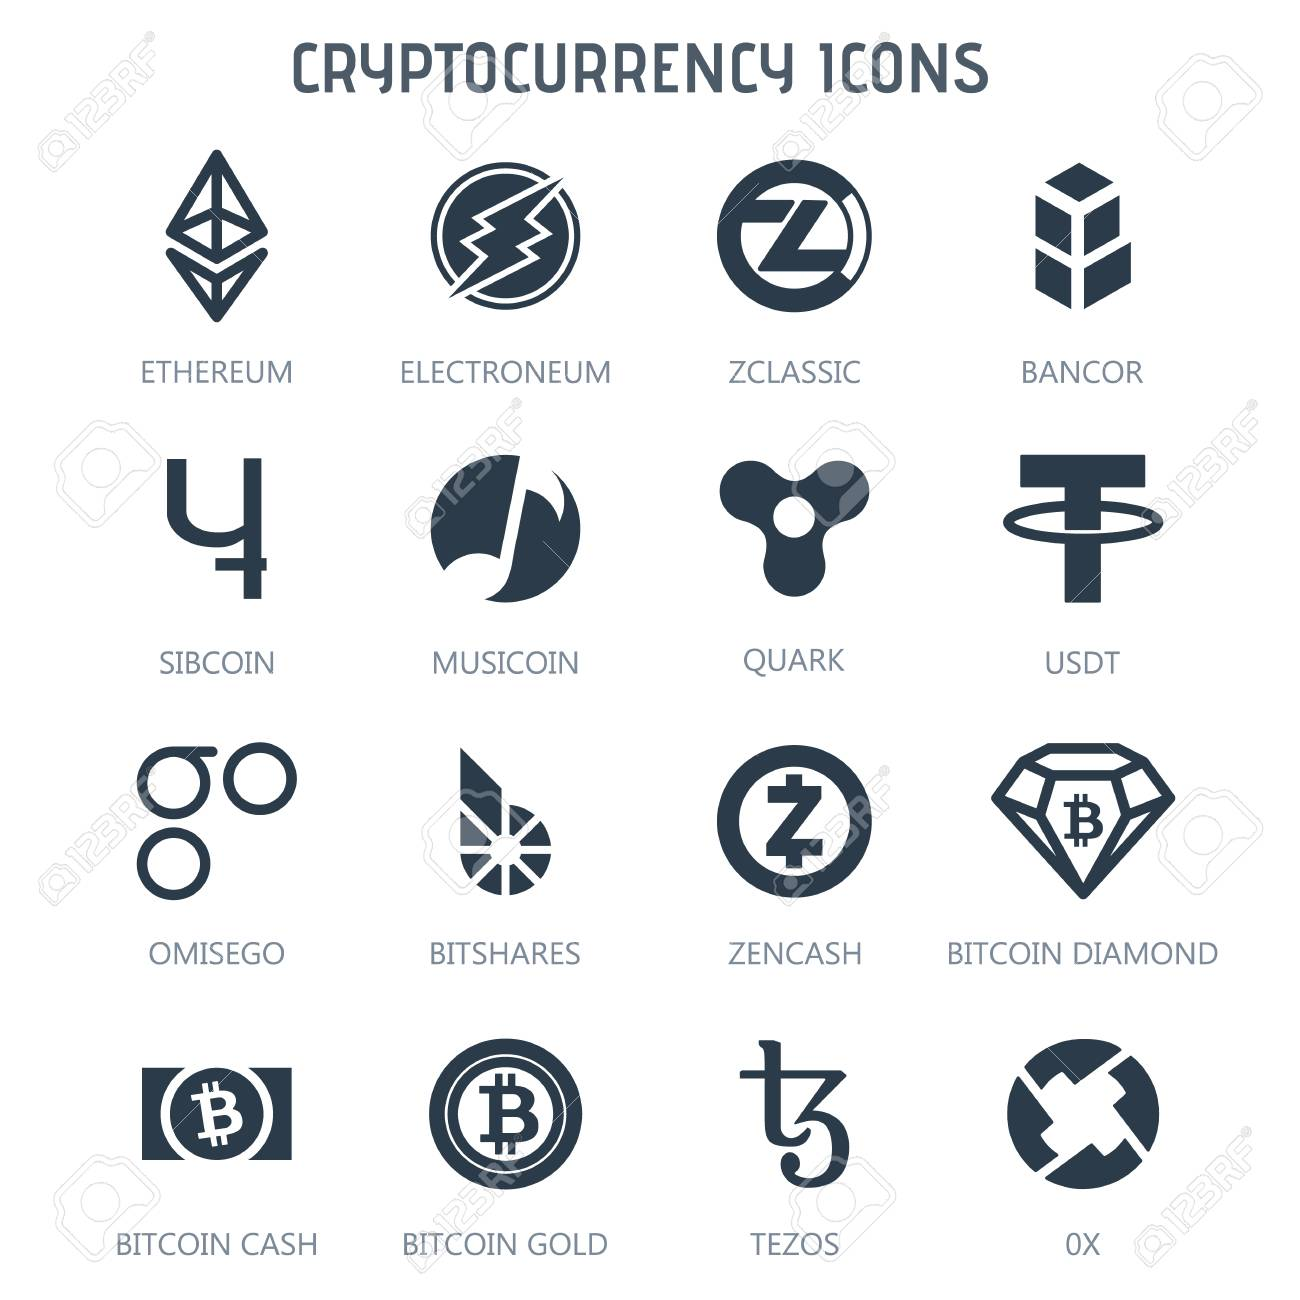 buy zclassic cryptocurrency